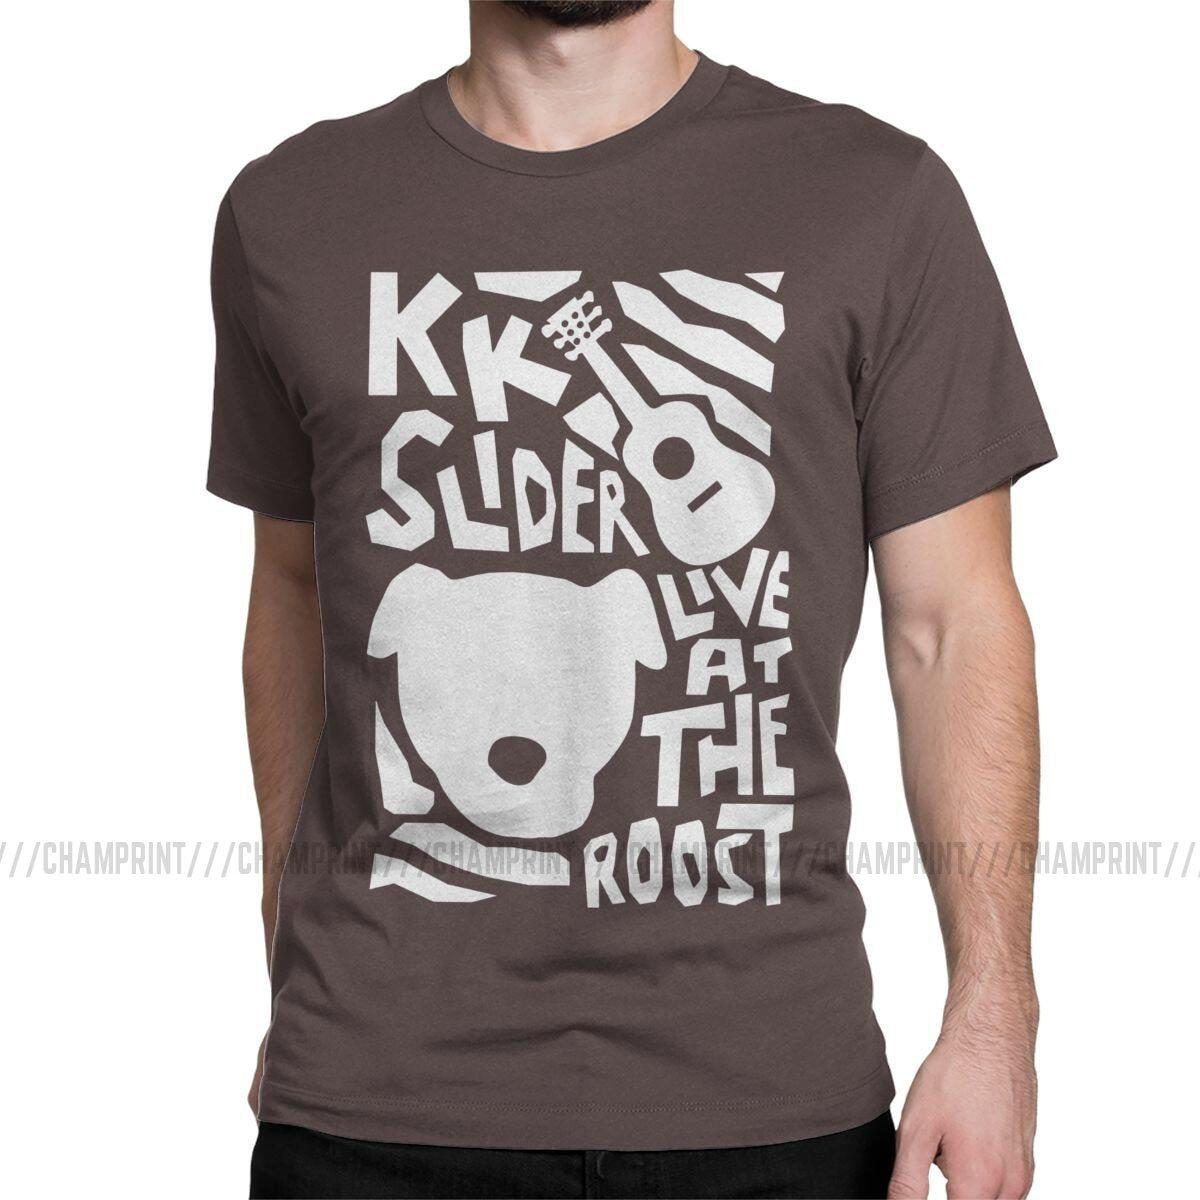 KK Slider Live at The Roost Shirt, Brown / L